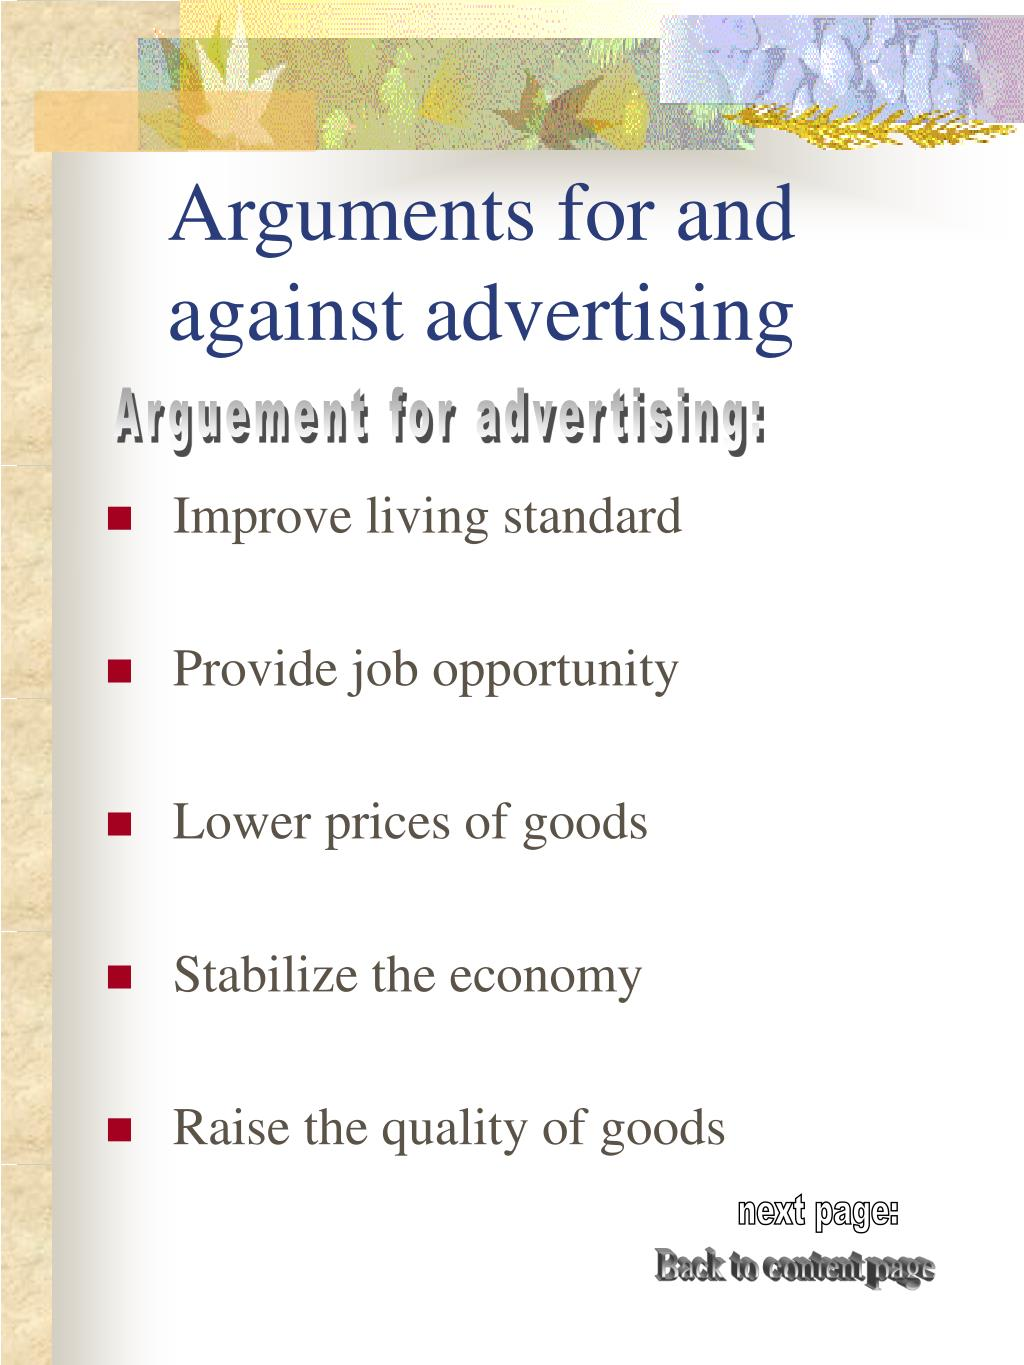 Arguments for and against advertising